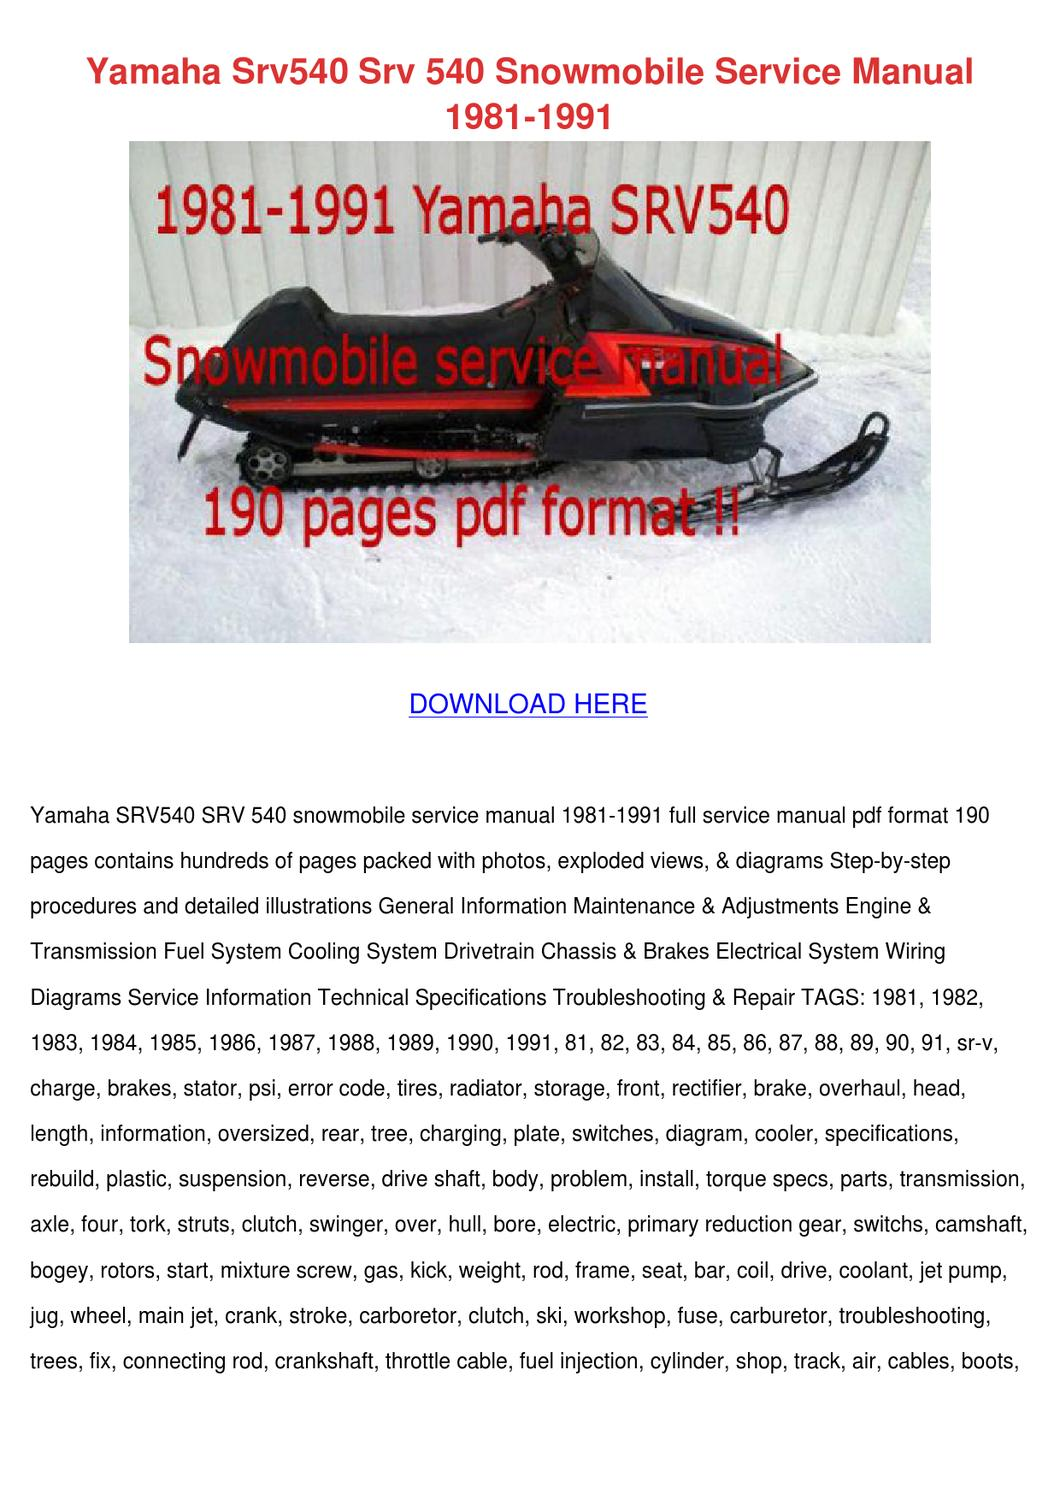 yamaha jet ski parts diagram mk4 jetta headlight wiring srv540 srv 540 snowmobile service manu by leoralaird - issuu